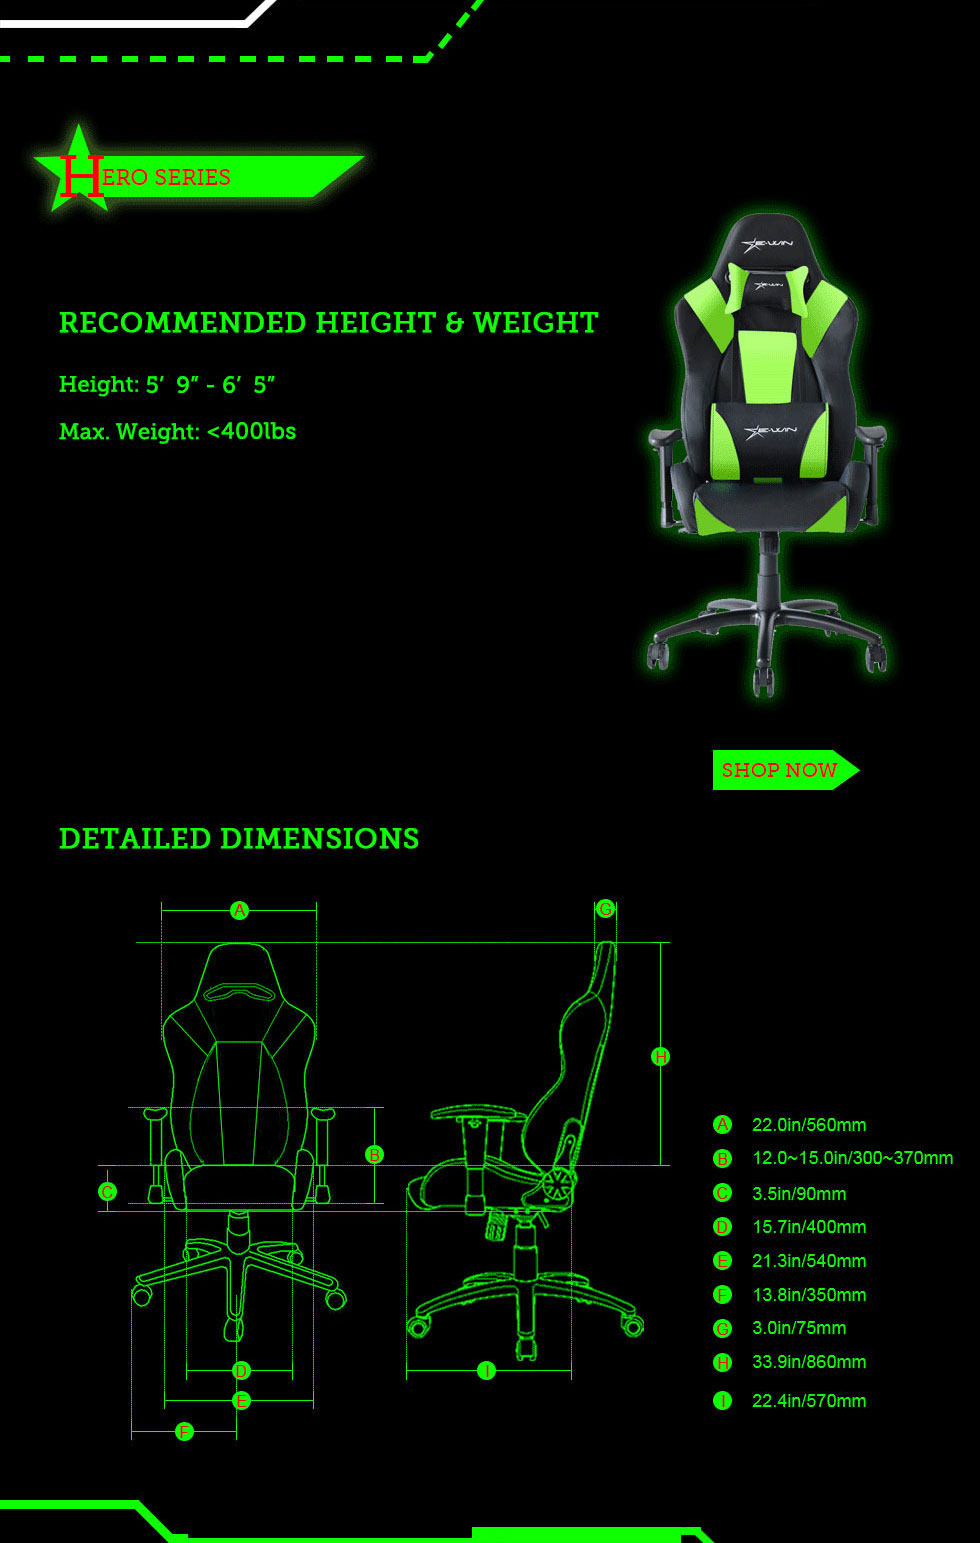 Dimensions of E-WIN Hero Series Gaming Chairs